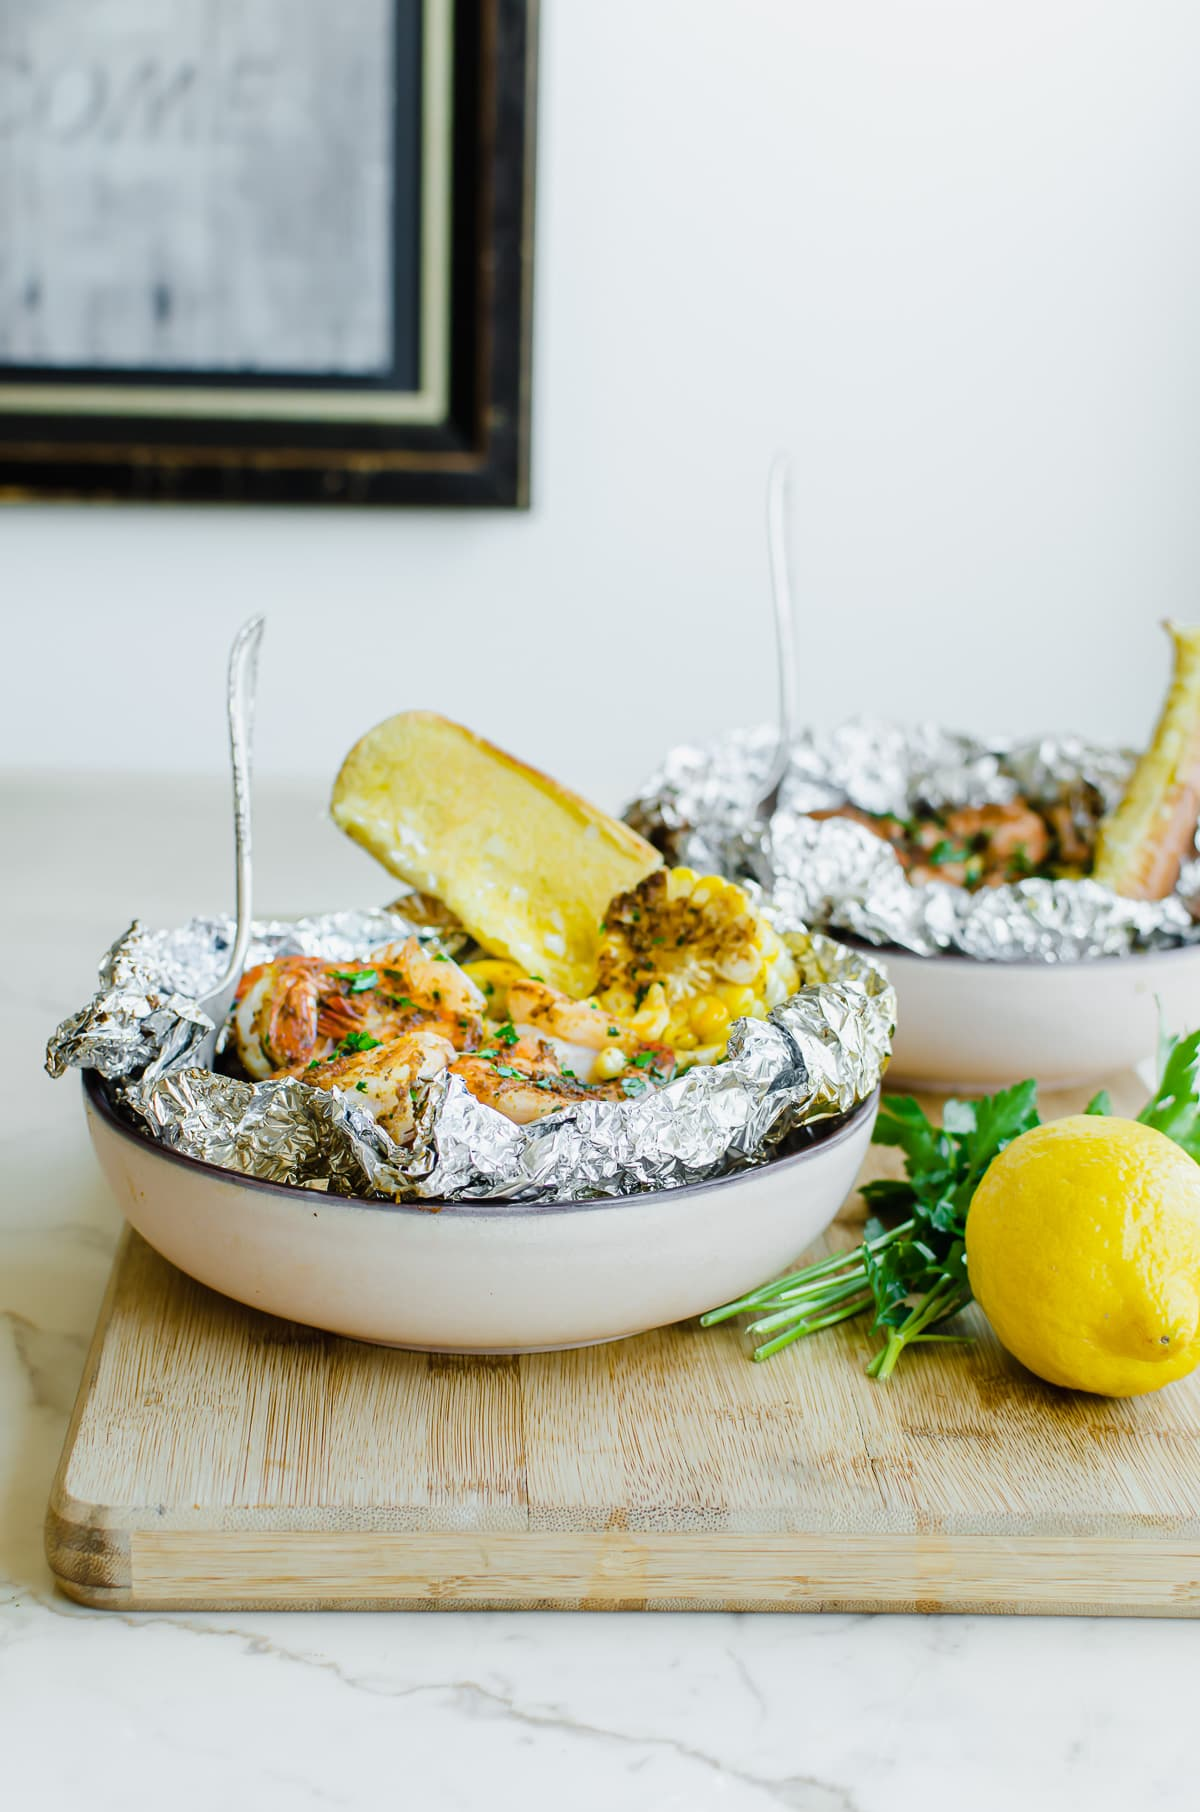 Two bowls of grilled shrimp boil on a wood cutting board with fresh lemon and parsley on the side.